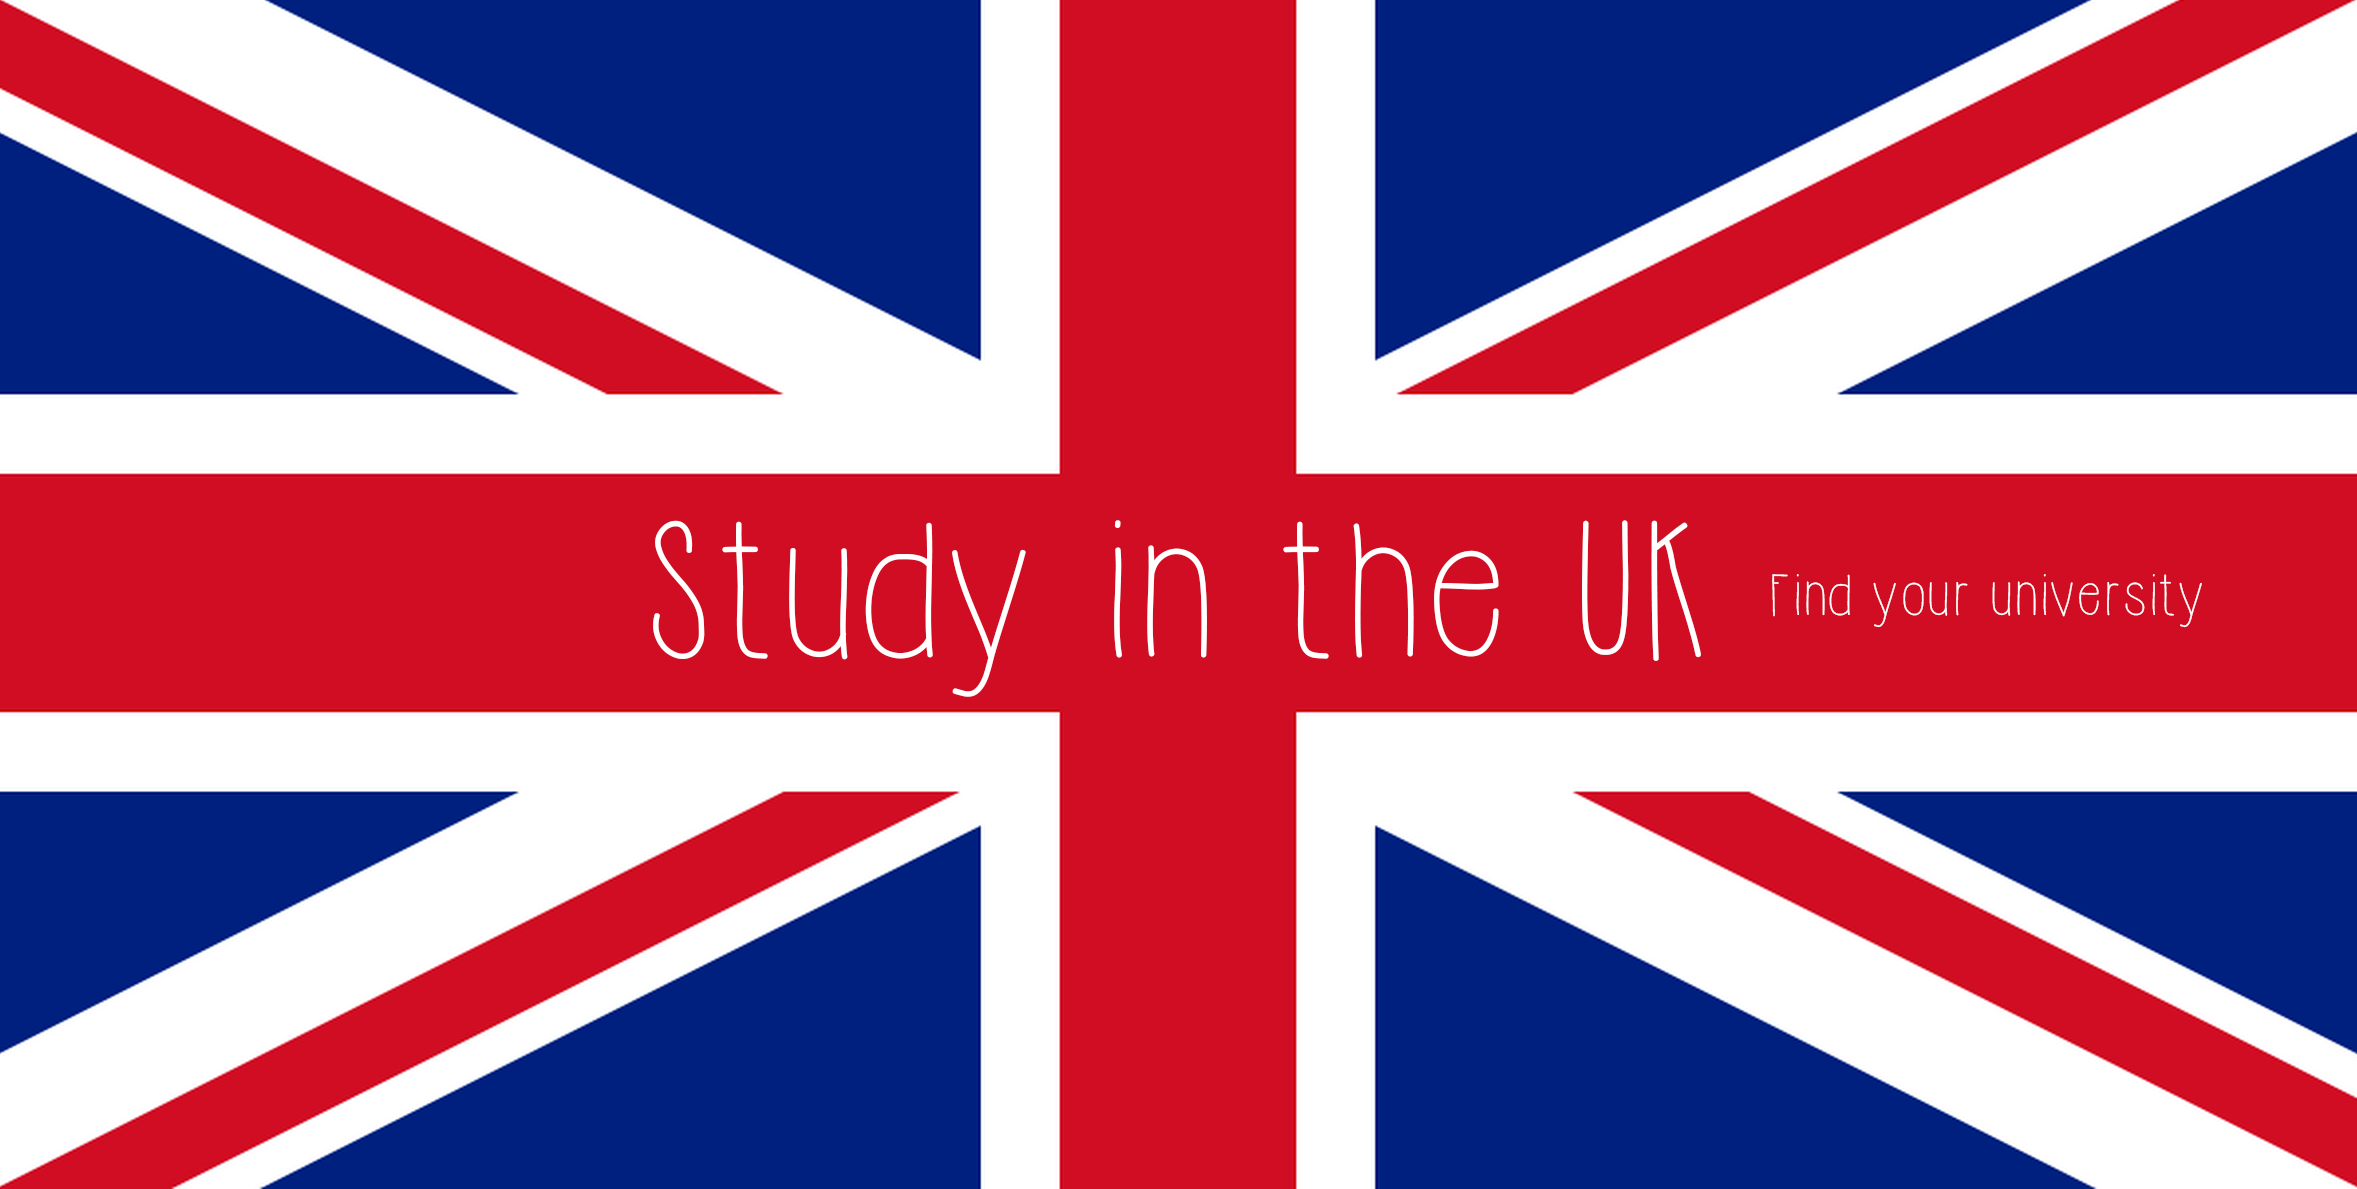 Study in the UK | Find your university